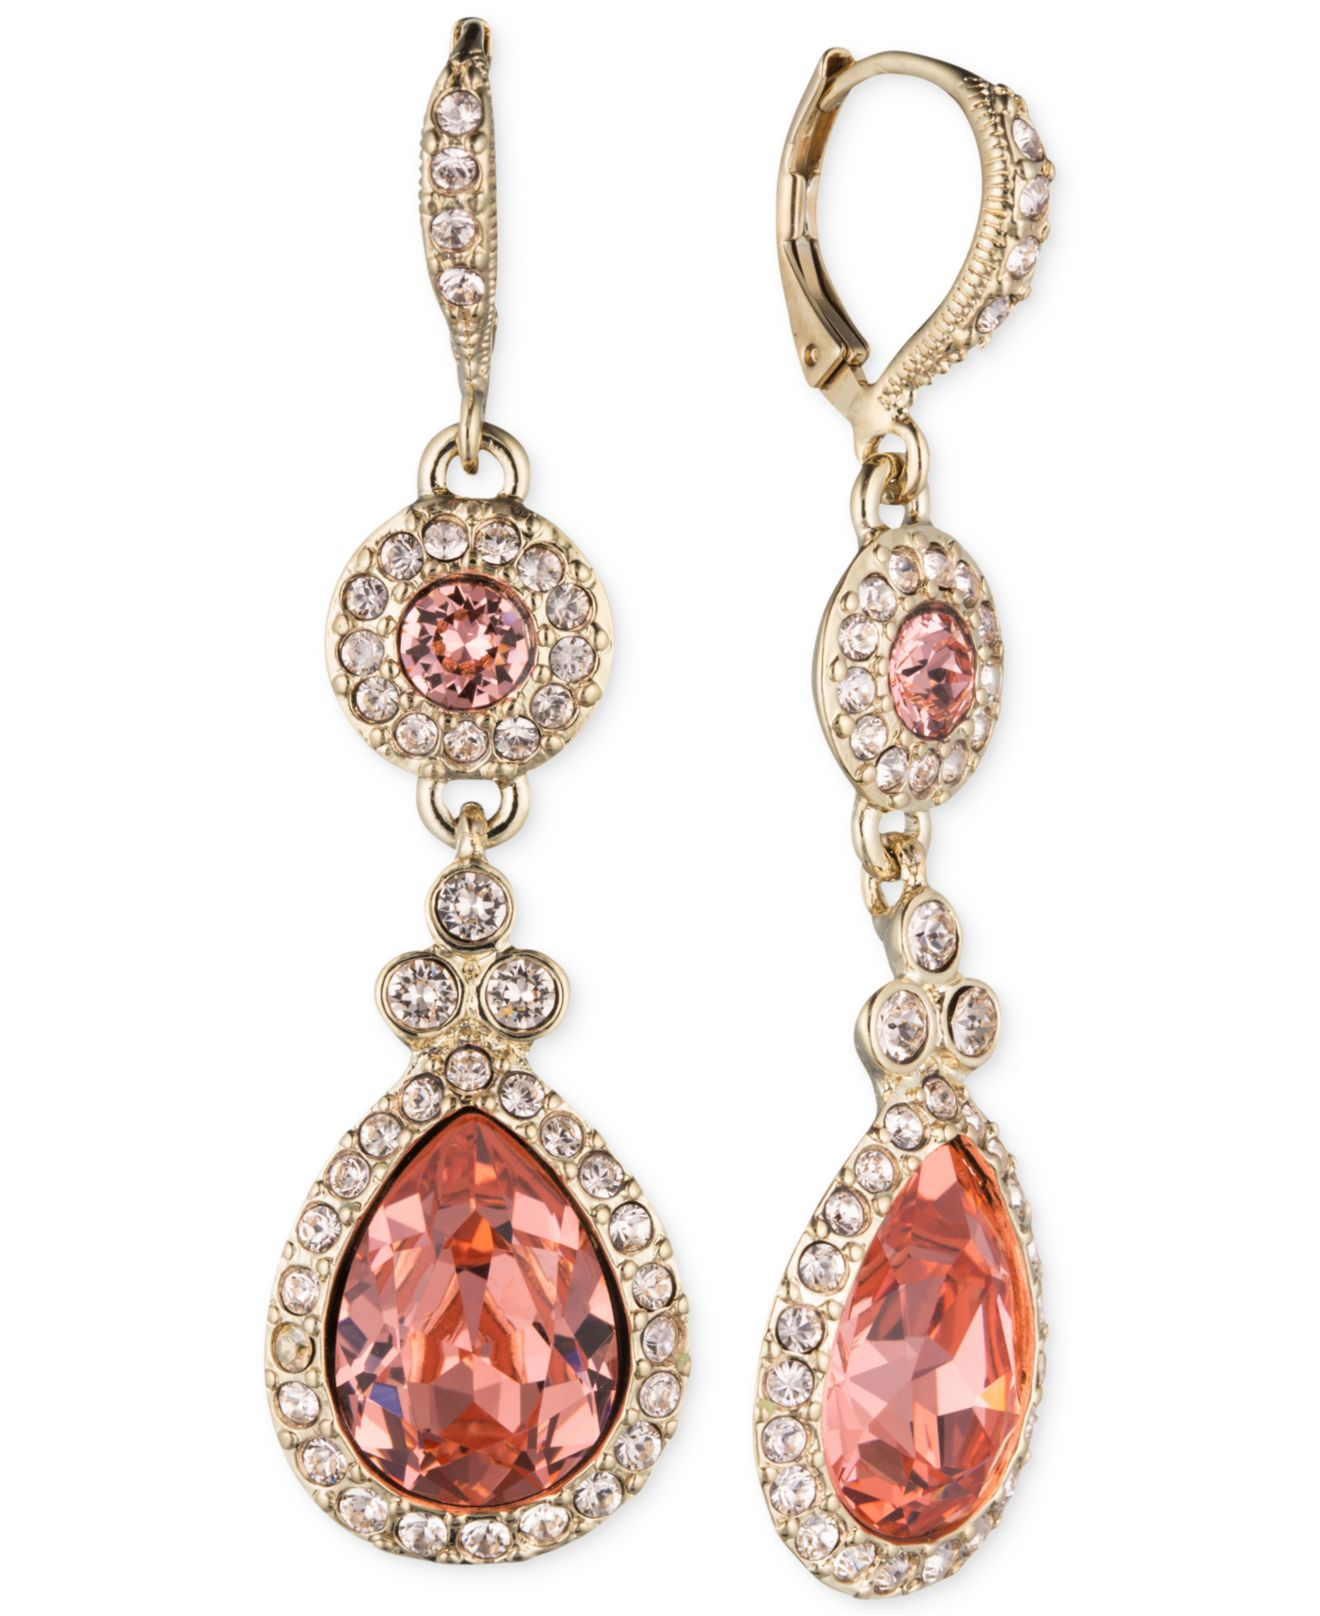 Givenchy Gold Tone Rose Peach Crystal Double Drop Earrings In Pink Lyst